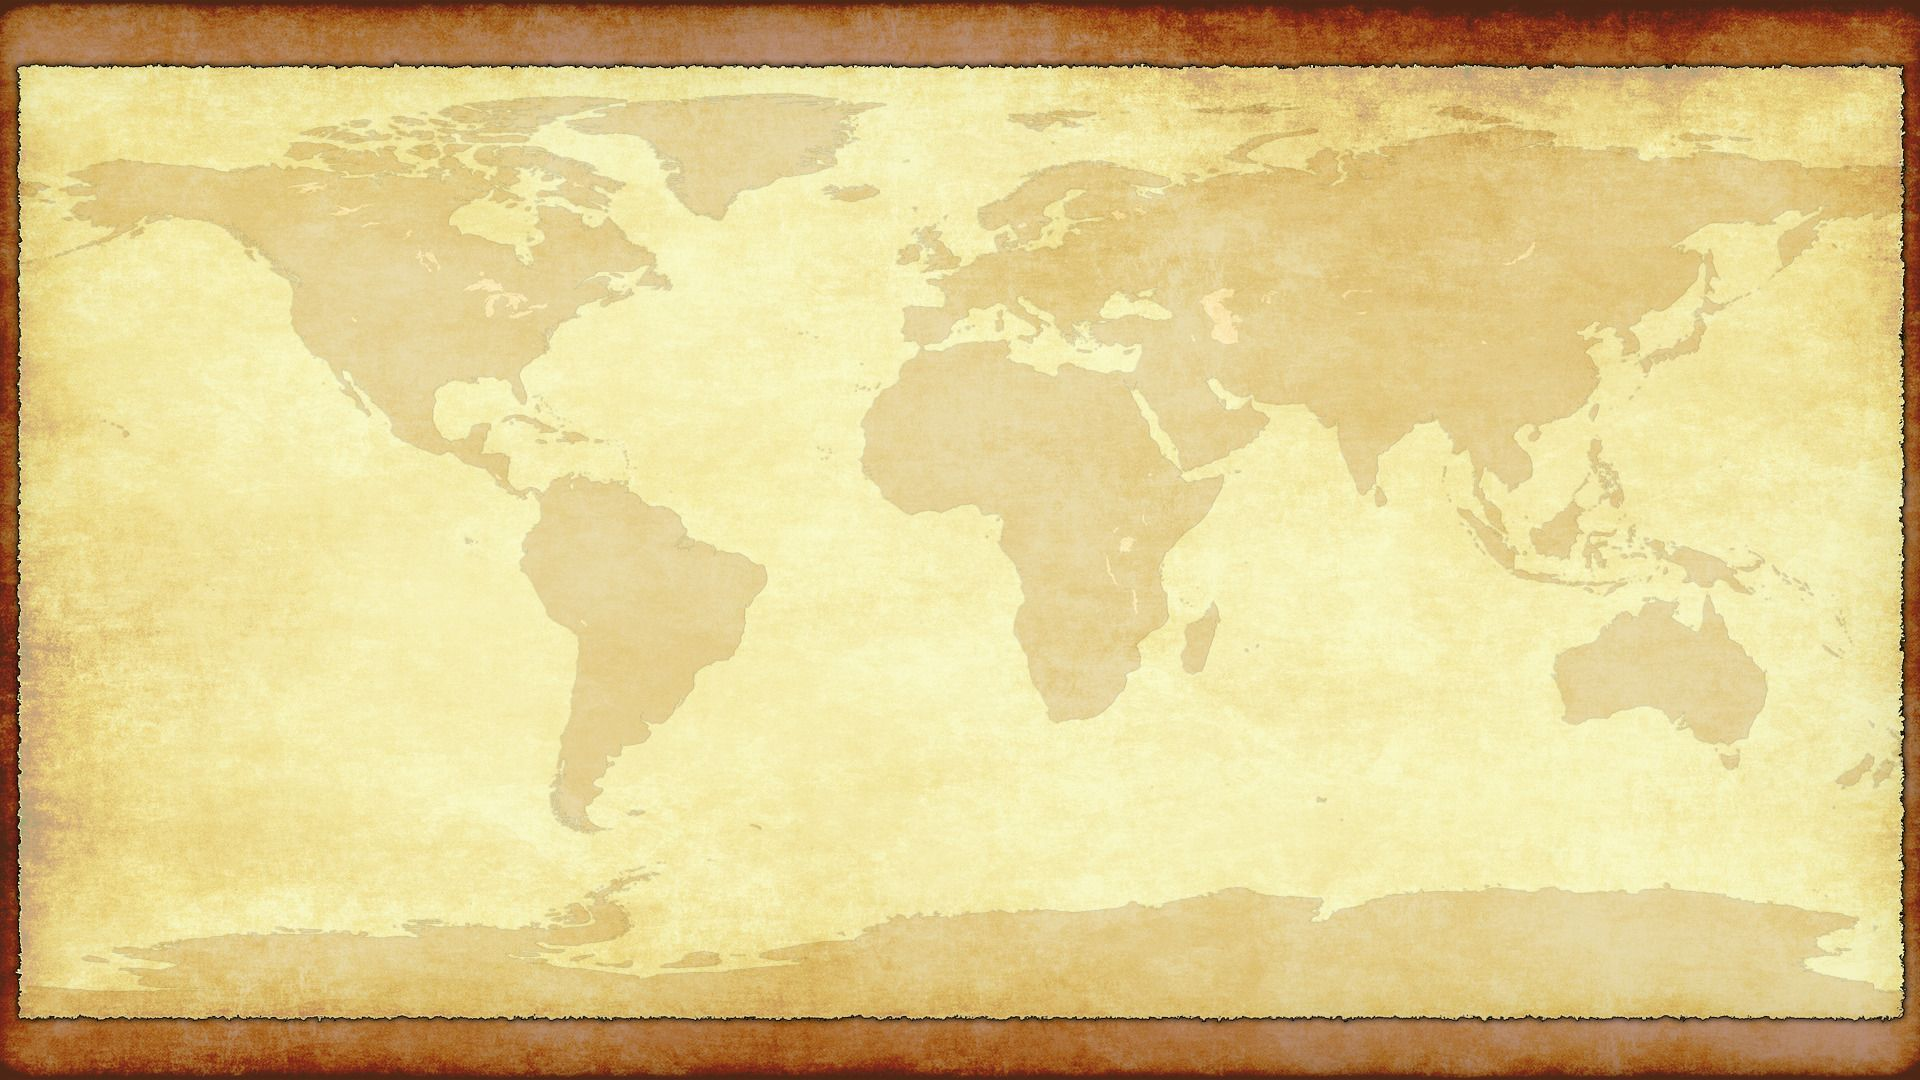 Download Hd Wallpapers Of World, Map